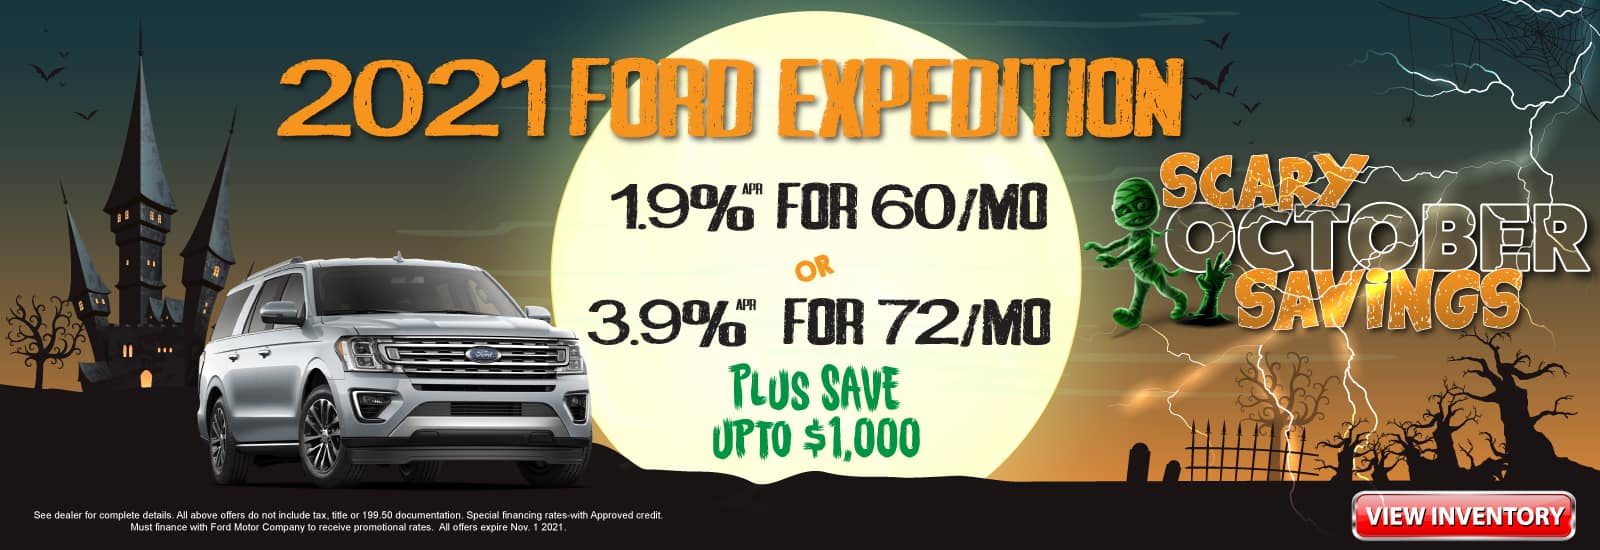 October2021-Ford-Expedition-Web-Banner-1600×550